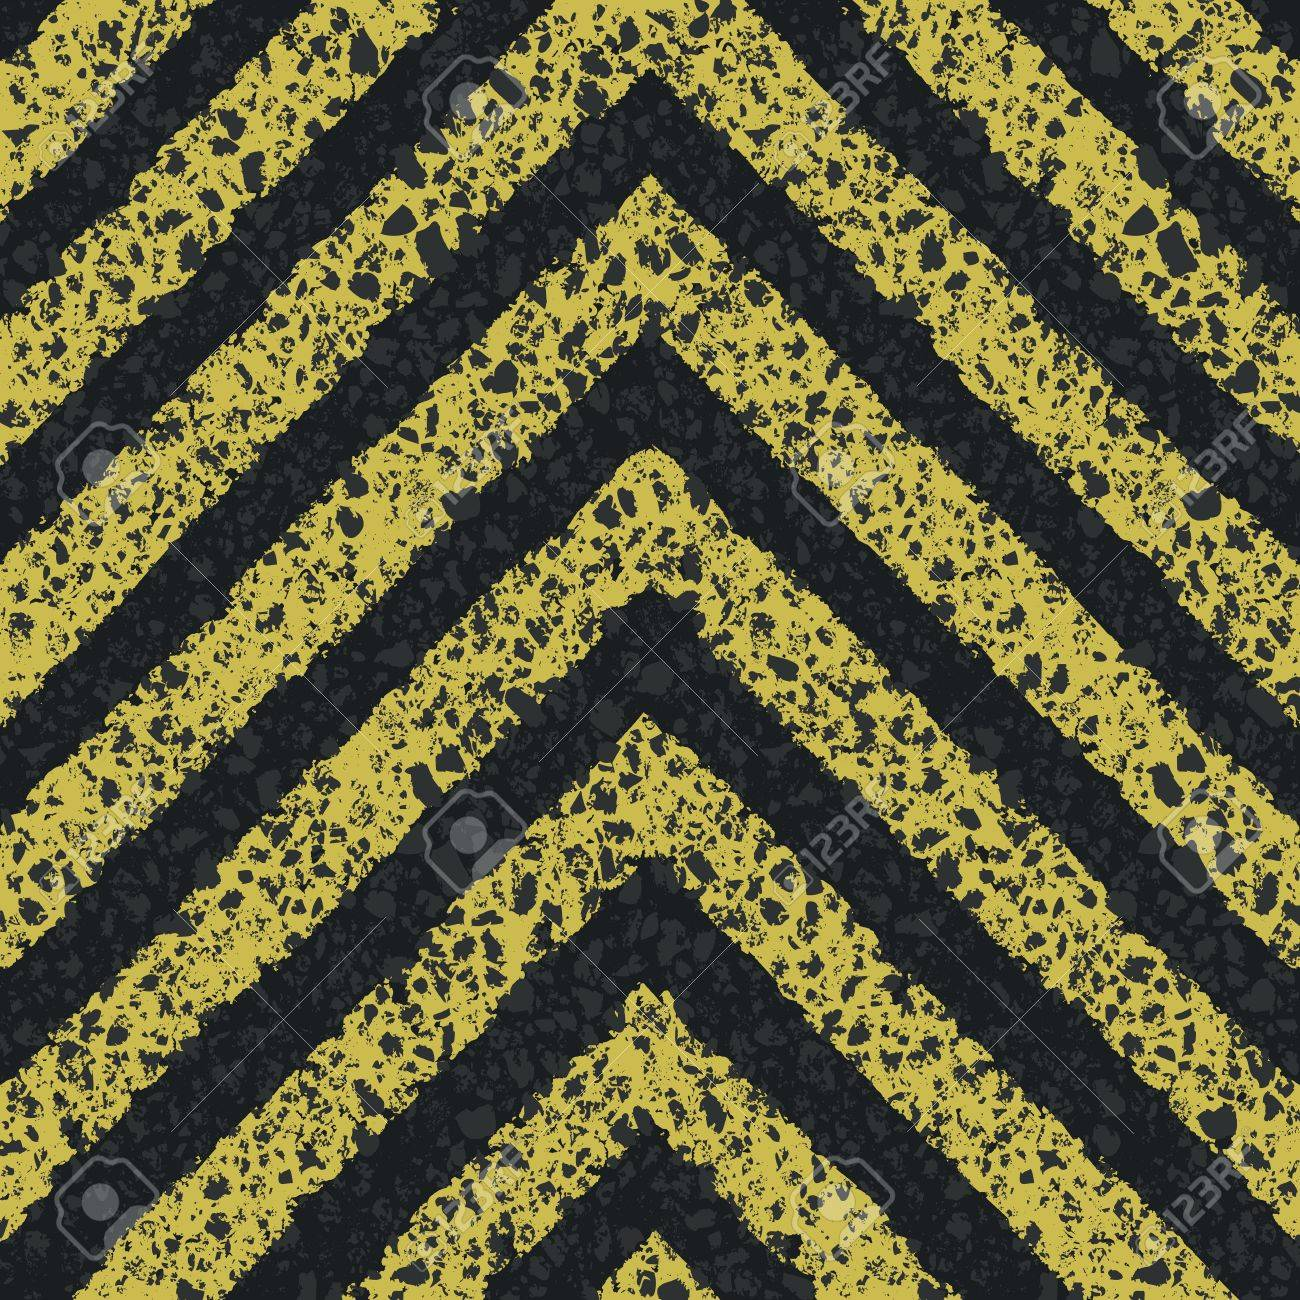 Danger arrows on asphalt texture. Stock Vector - 18216113